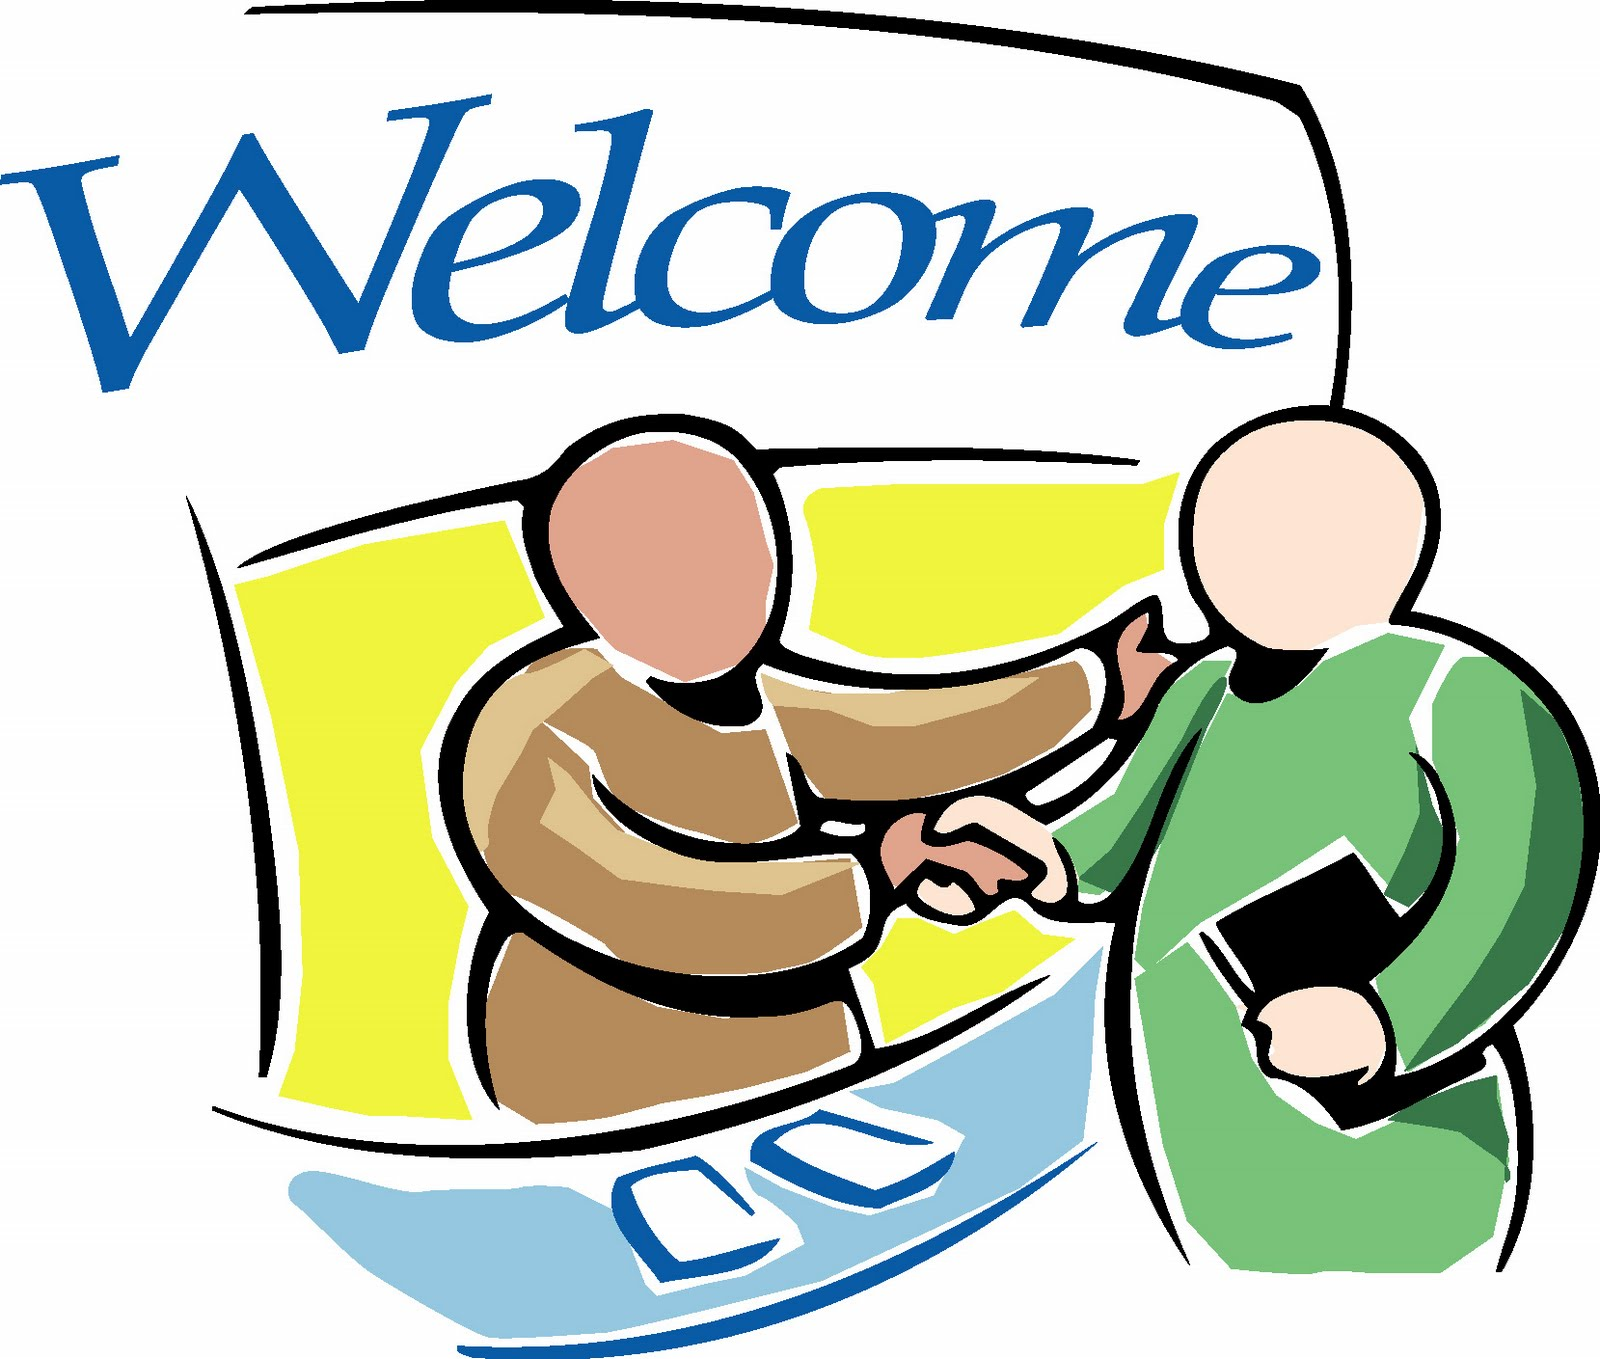 clipart visitor welcome visitors announcements church hospitality november september clip cliparts sunday october methodist invite collection food